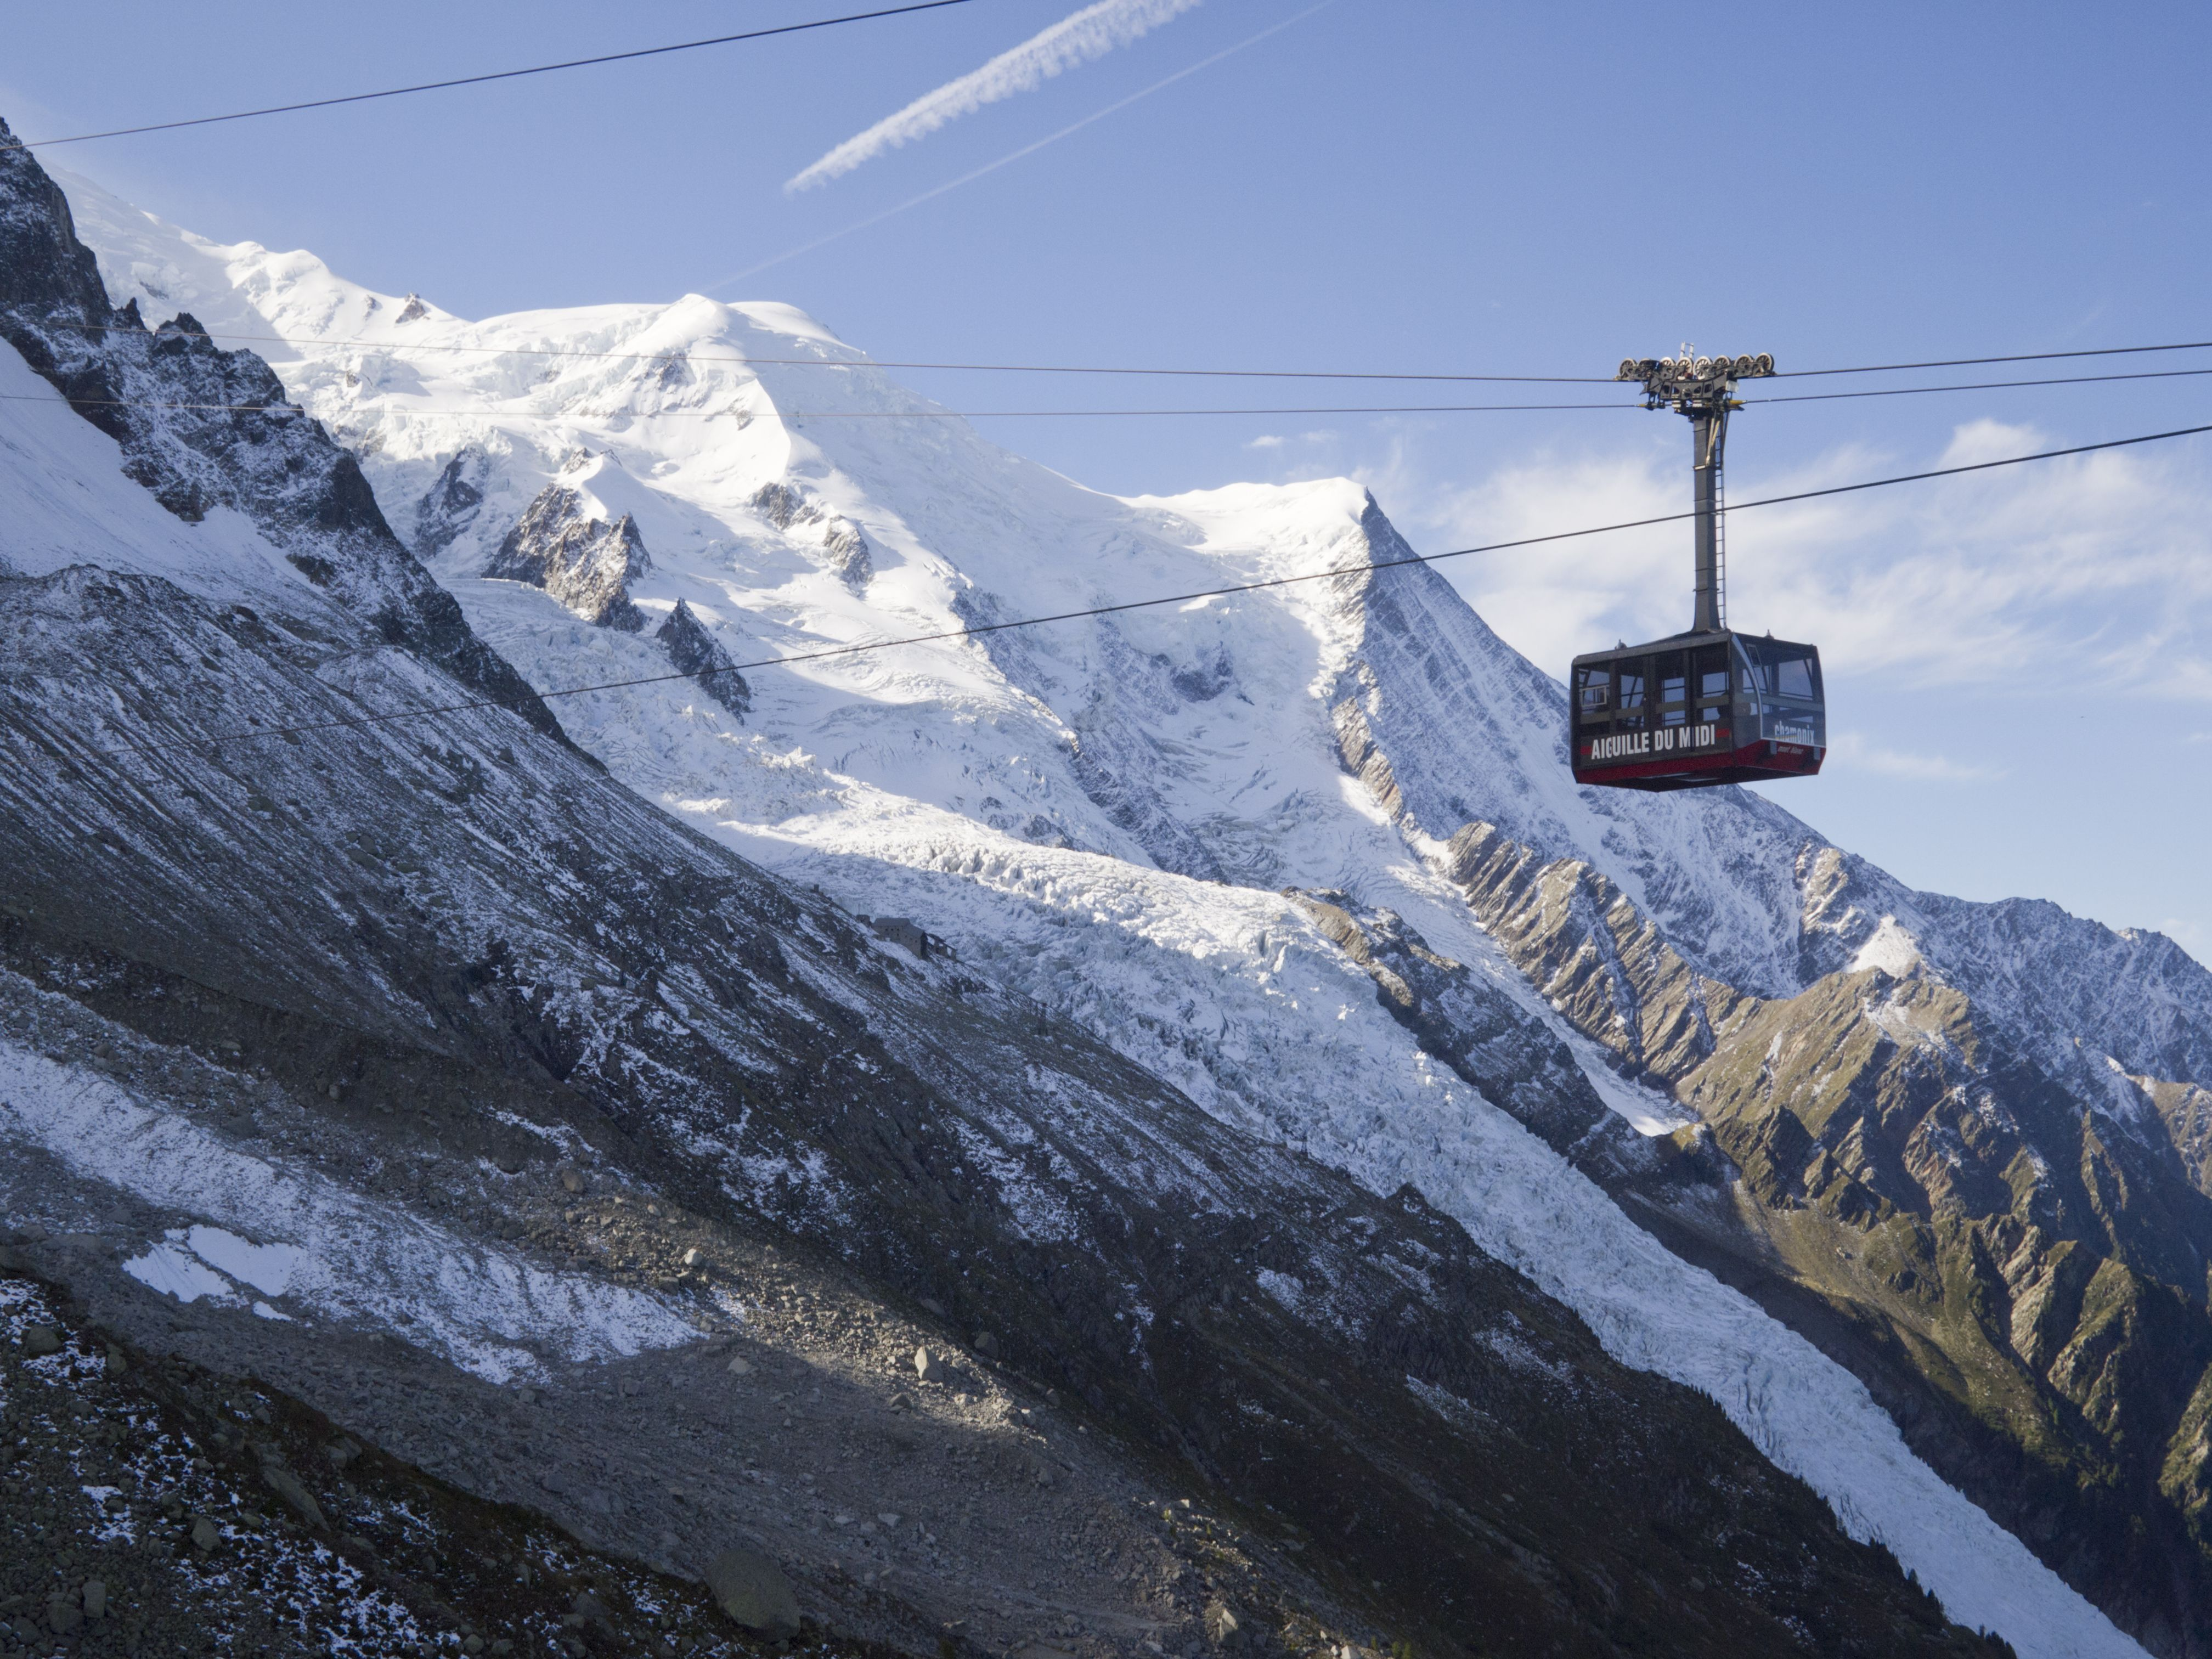 How Safe Are Ski Lifts And Cable Cars Anyway Travel Destinations European Travel European Travel